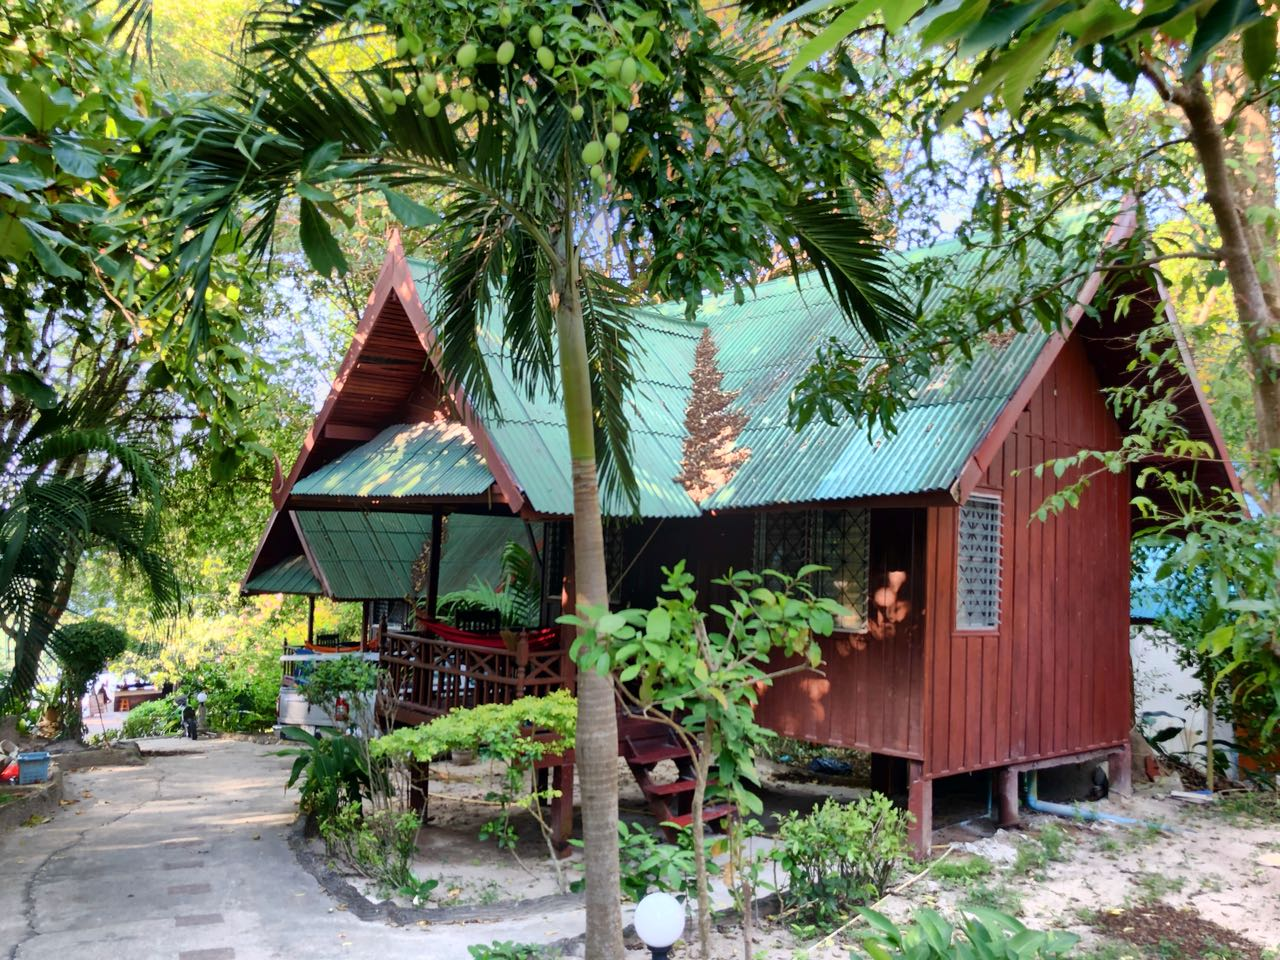 Unser Bungalow im Koh Tao Royal Resort